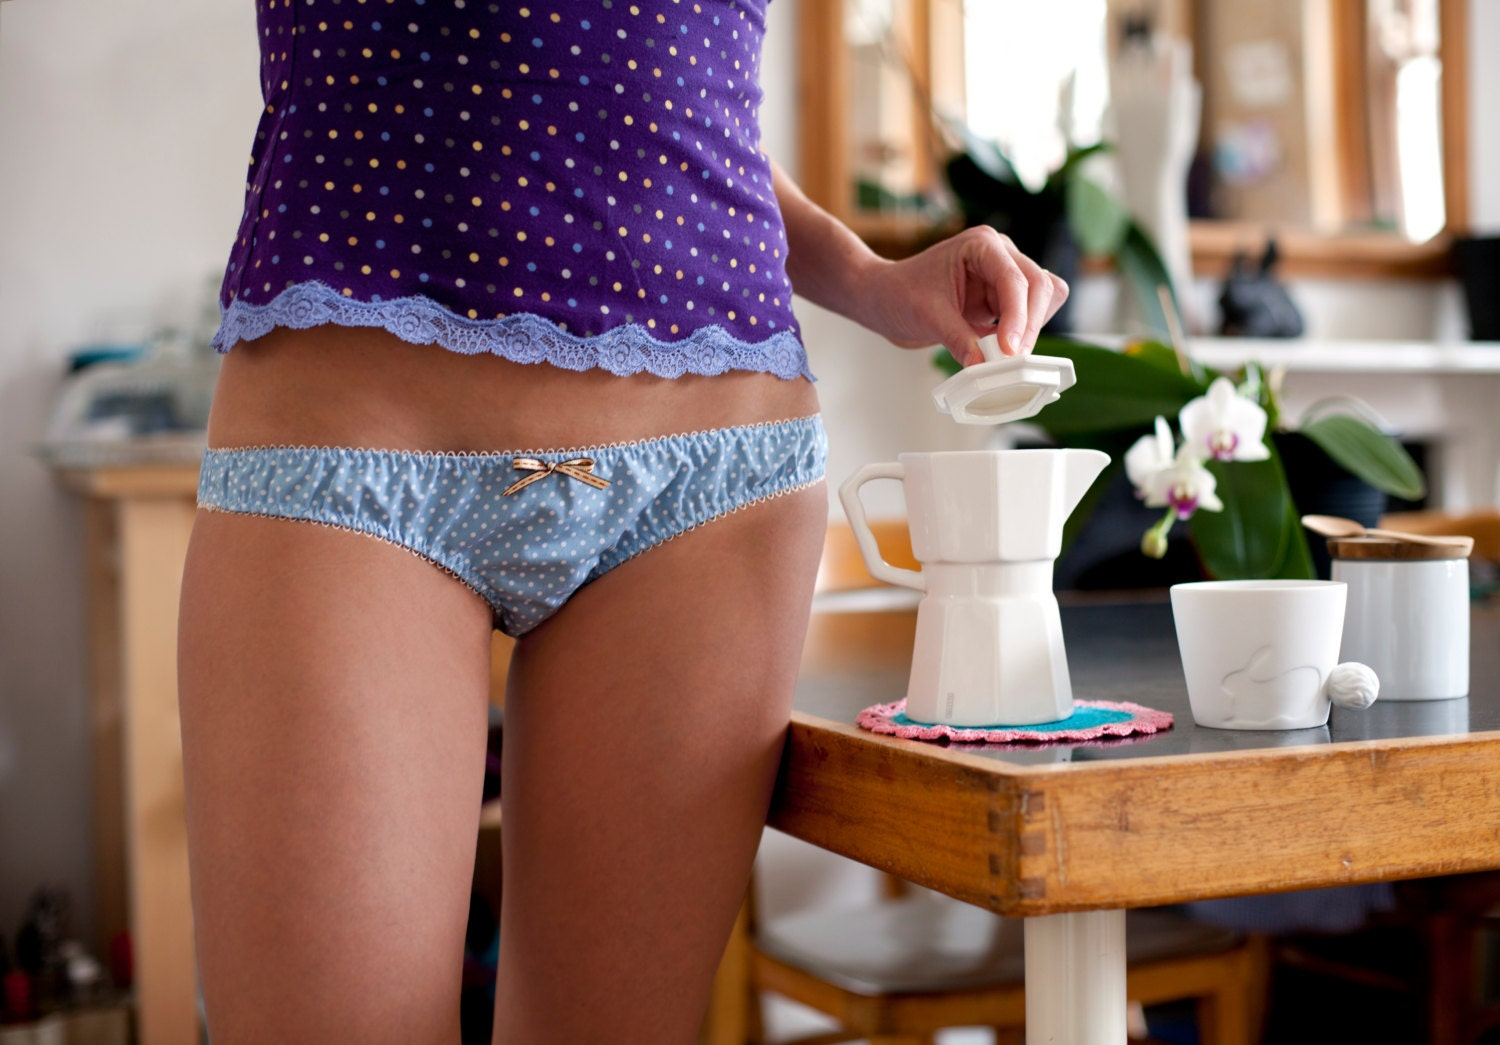 Lovely Polka Dots Cotton Panties By Voilalevelo On Etsy